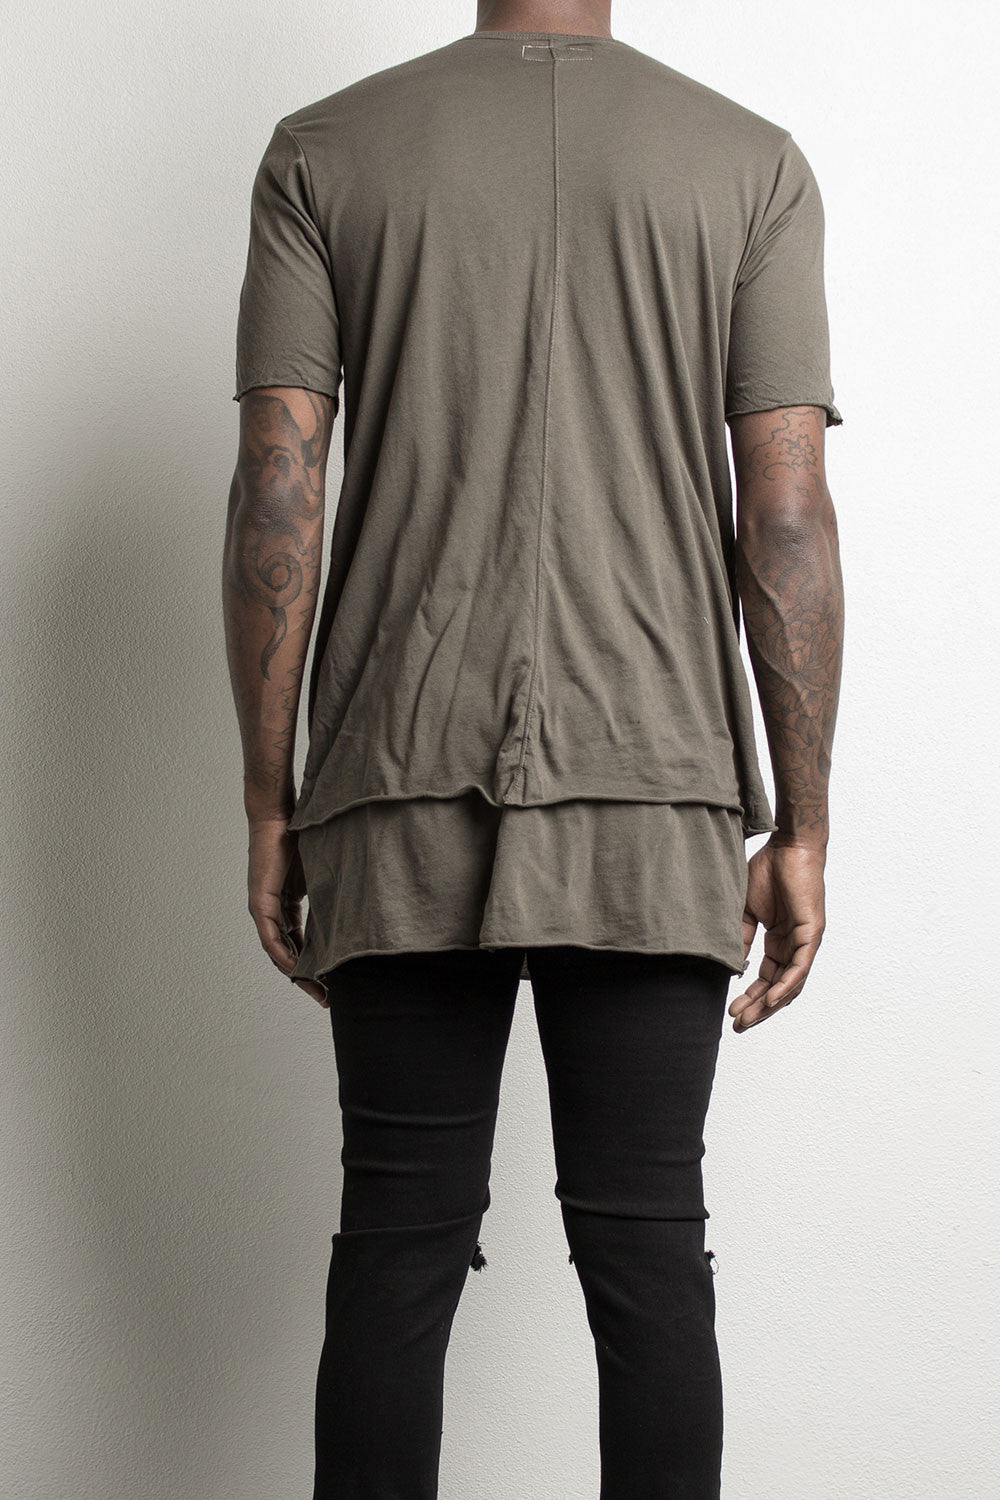 layered tee by daniel patrick, in army